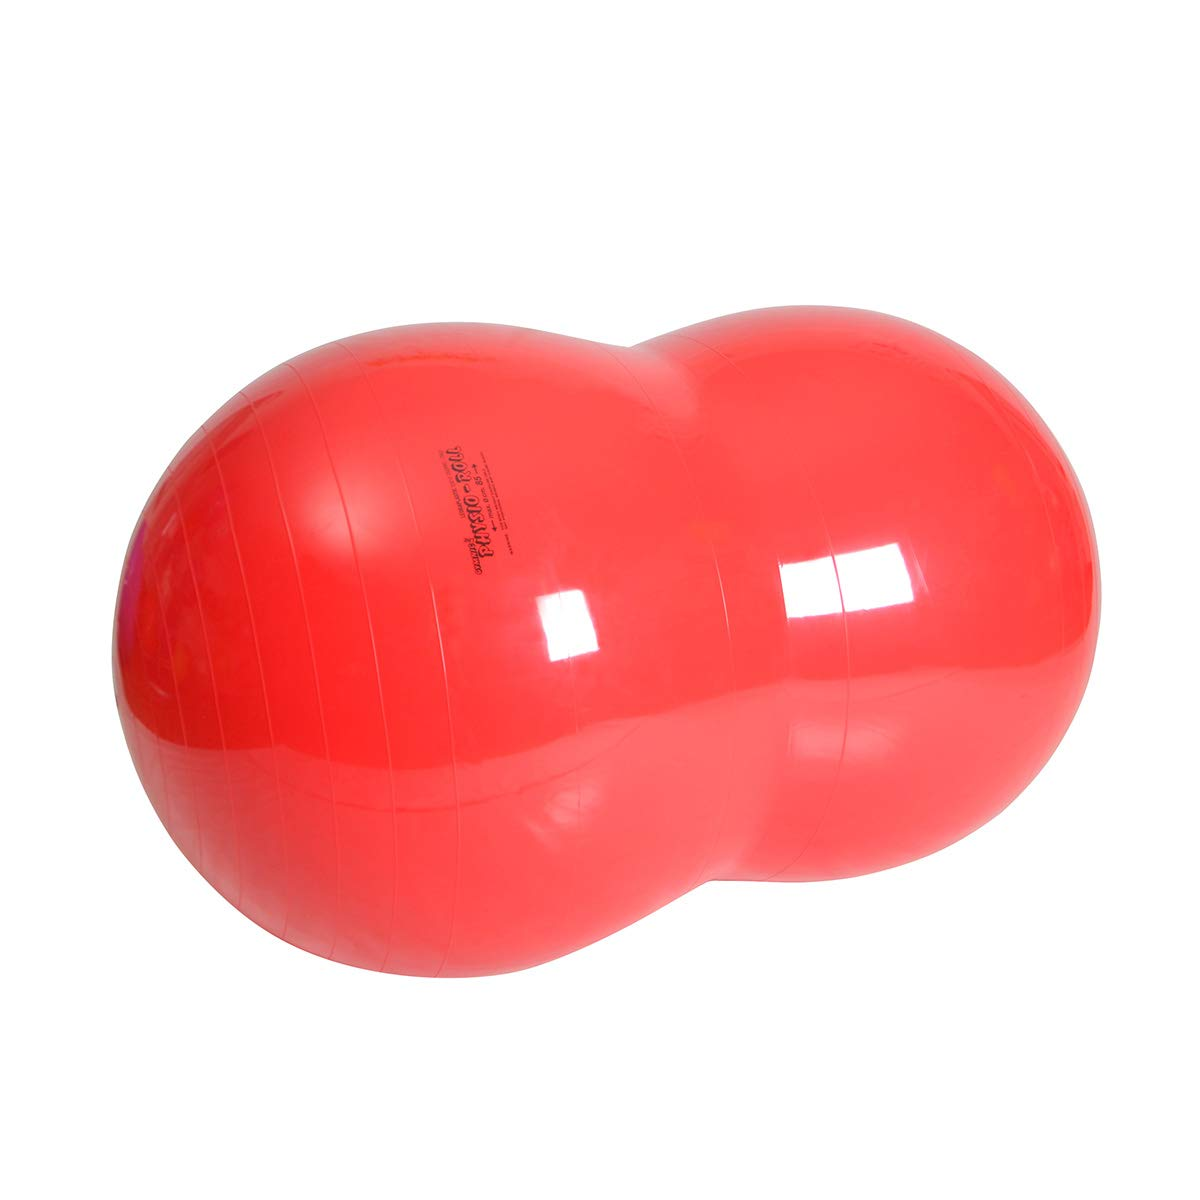 Gymnic Physio Roll Exercise Ball - Red by Gymnic (Image #1)